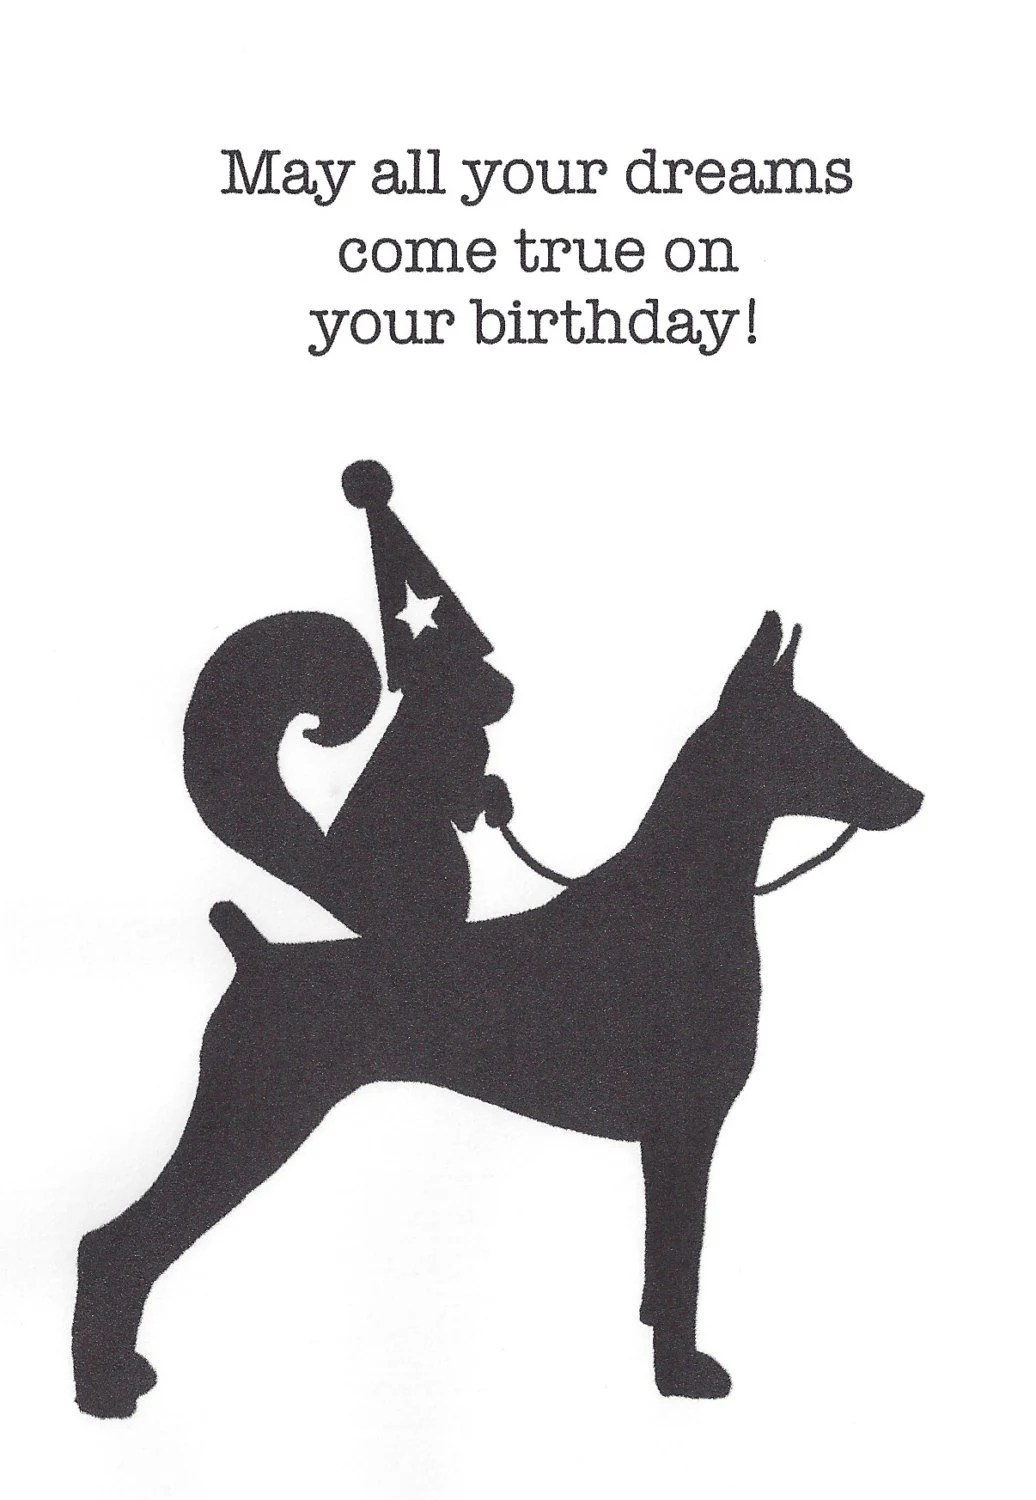 Squirrel Wearing A Party Hat While Riding A Doberman Pinscher